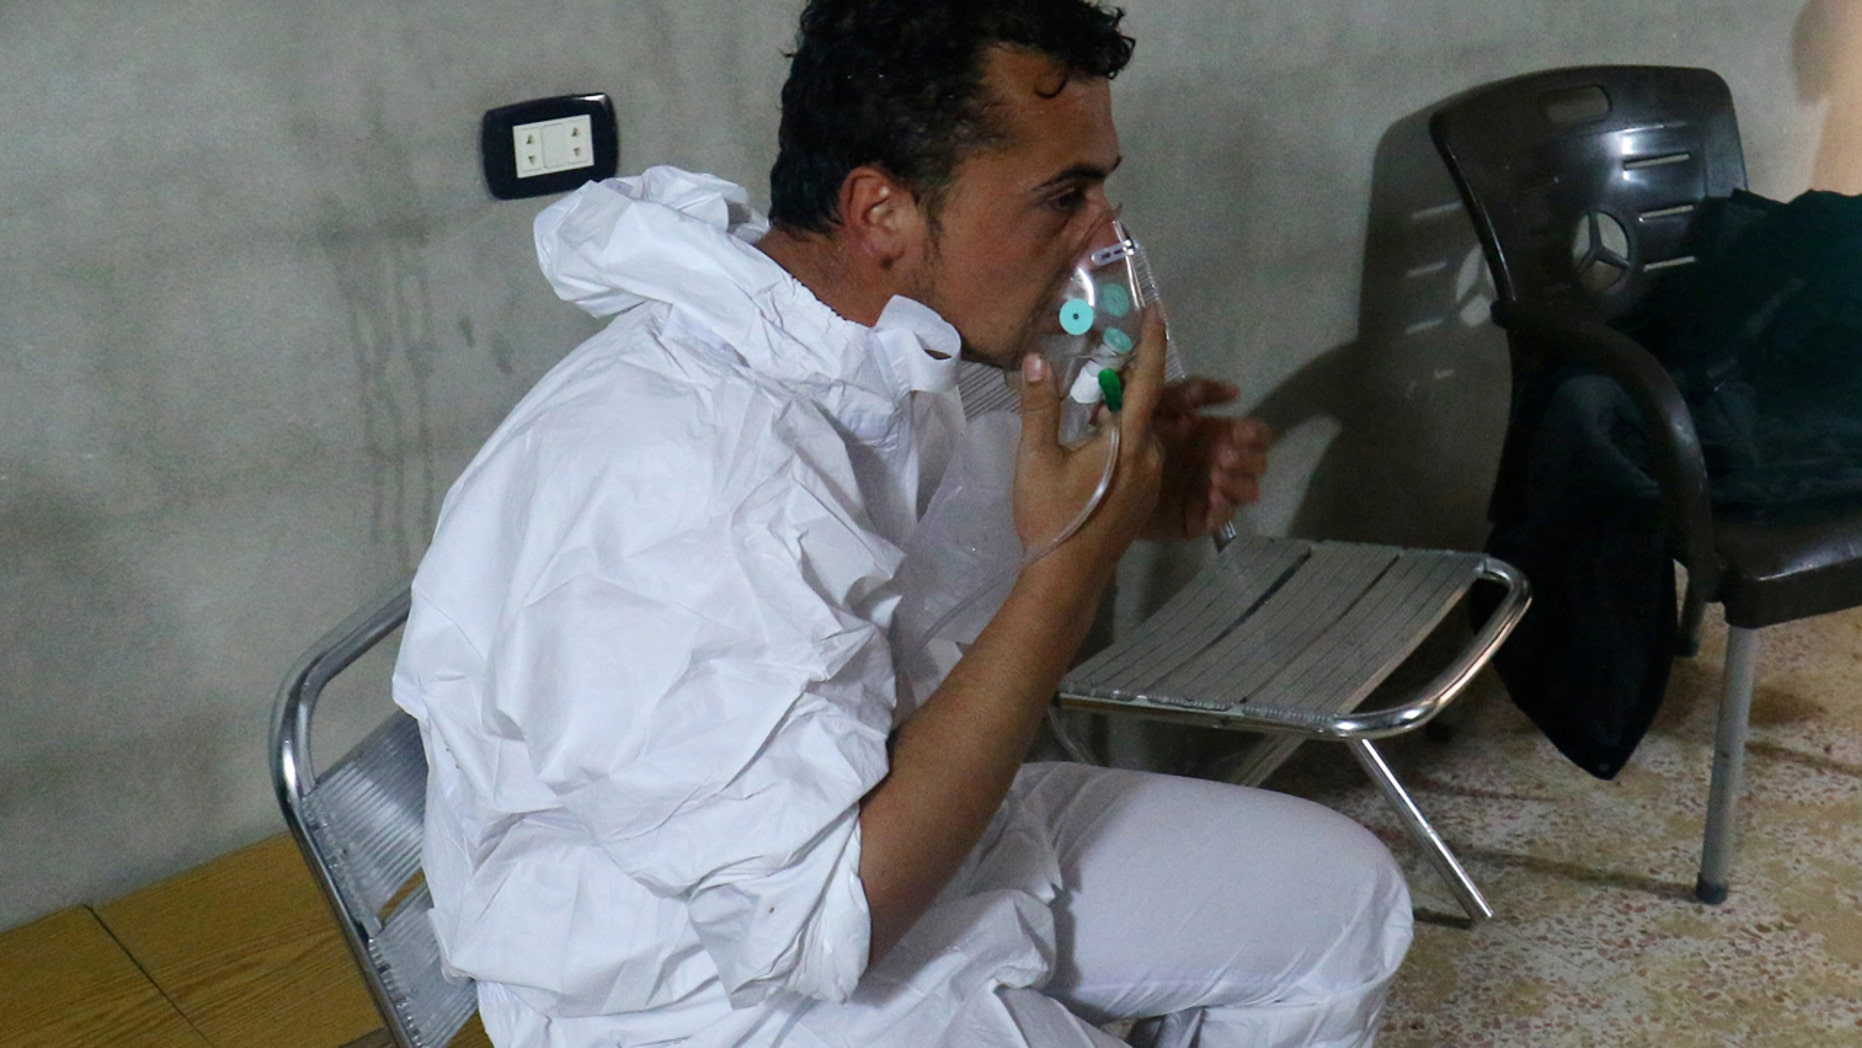 APRIL 4:  man breathes through an oxygen mask, after what rescue workers described as a suspected gas attack in the town of Khan Sheikhoun.